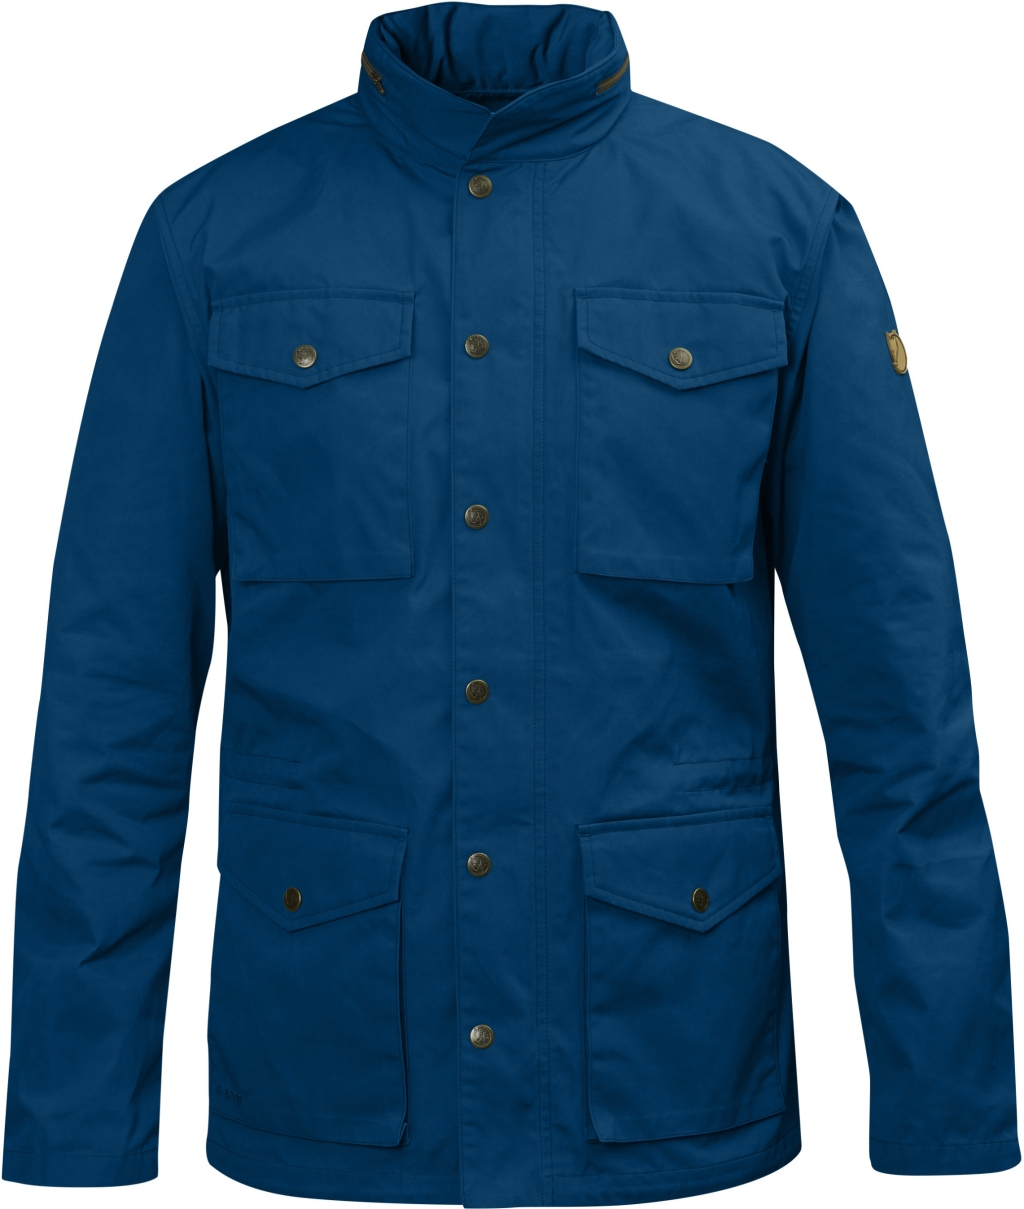 FjallRaven Raven Jacket Lake Blue-30